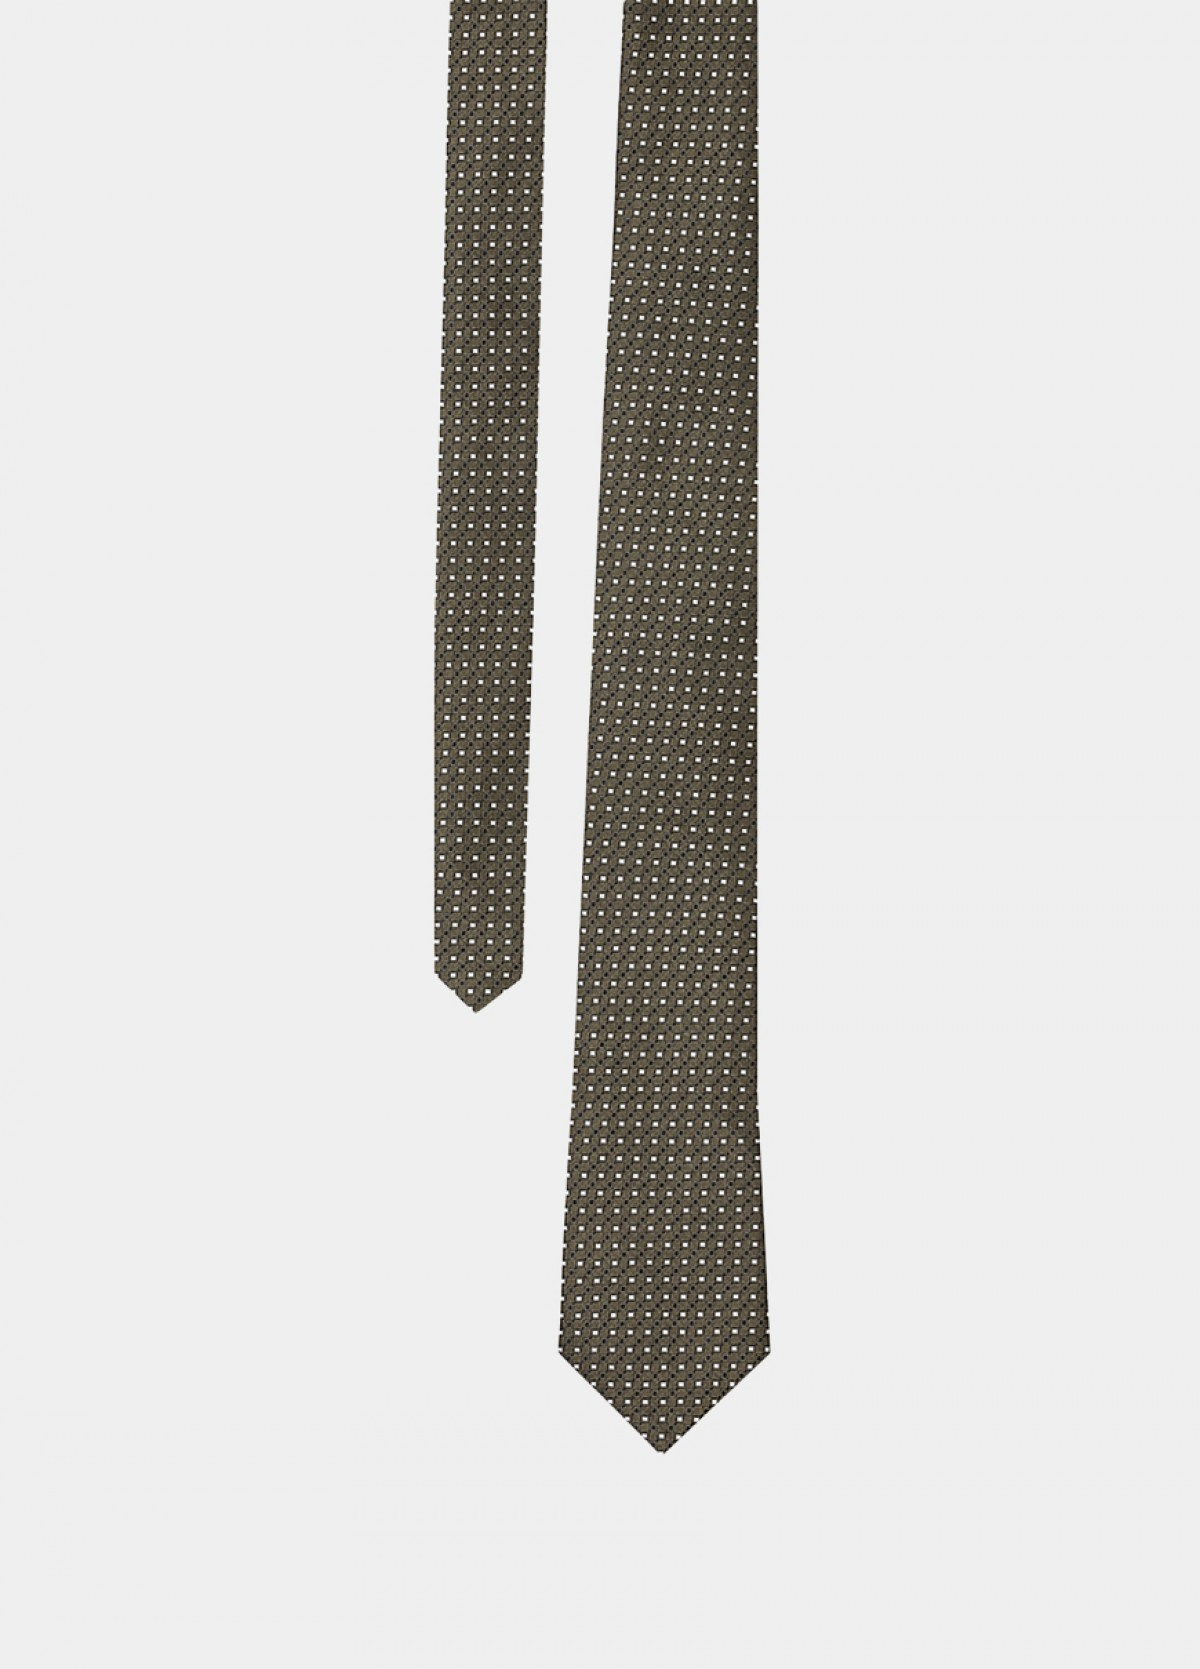 The Green Olive Silk Tie